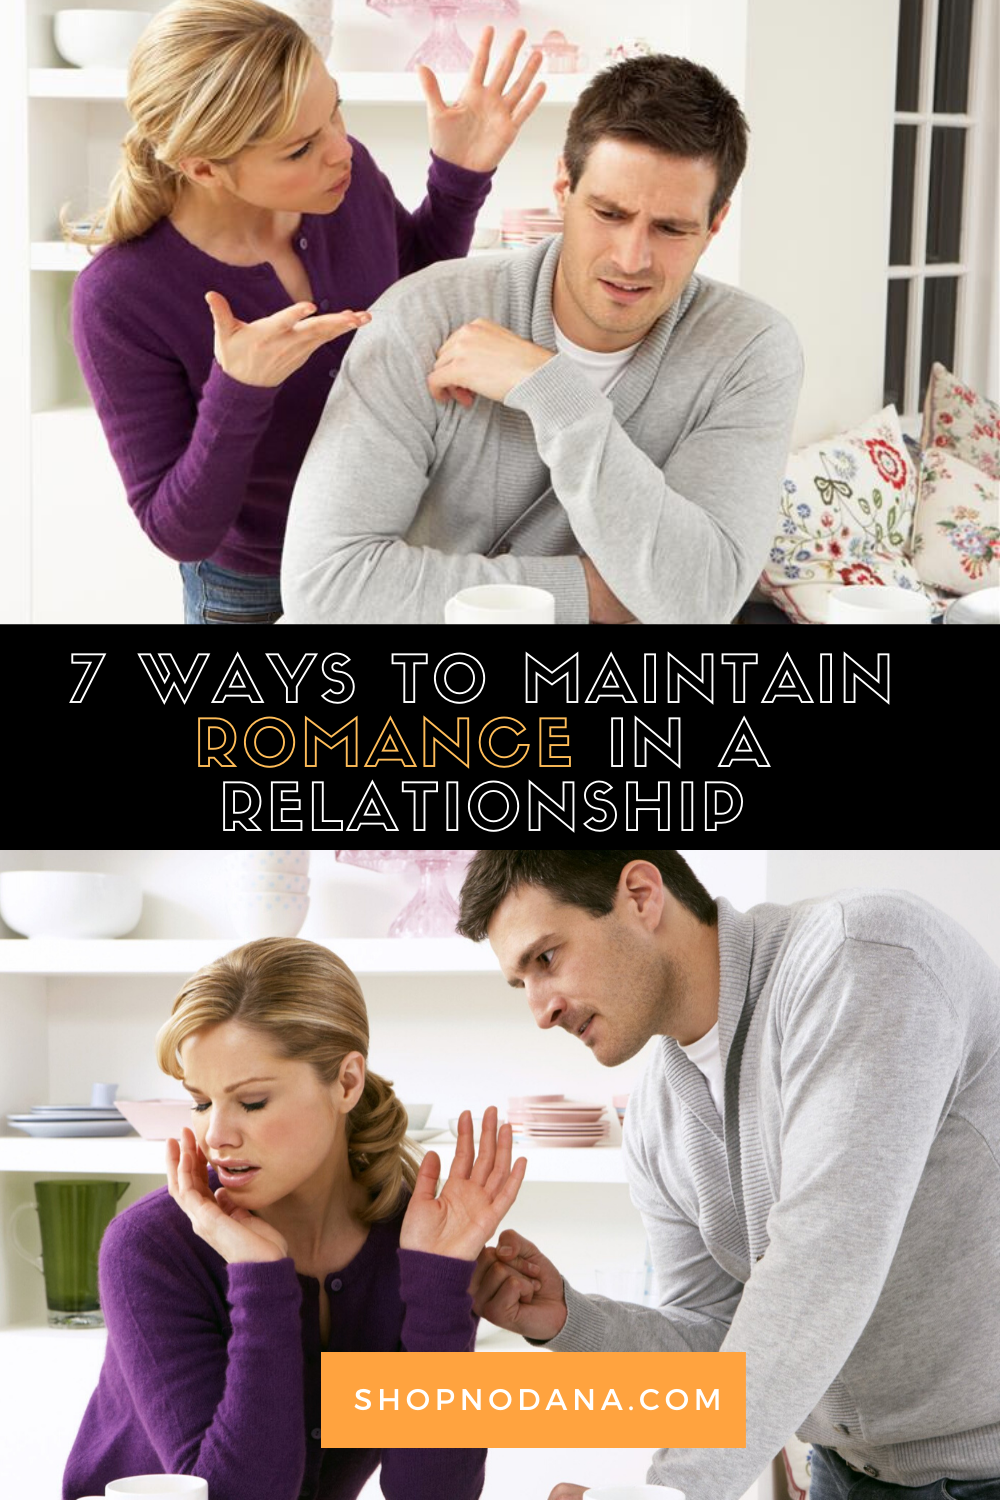 Relationship- 7 Ways To Maintain Romance In A Relationship